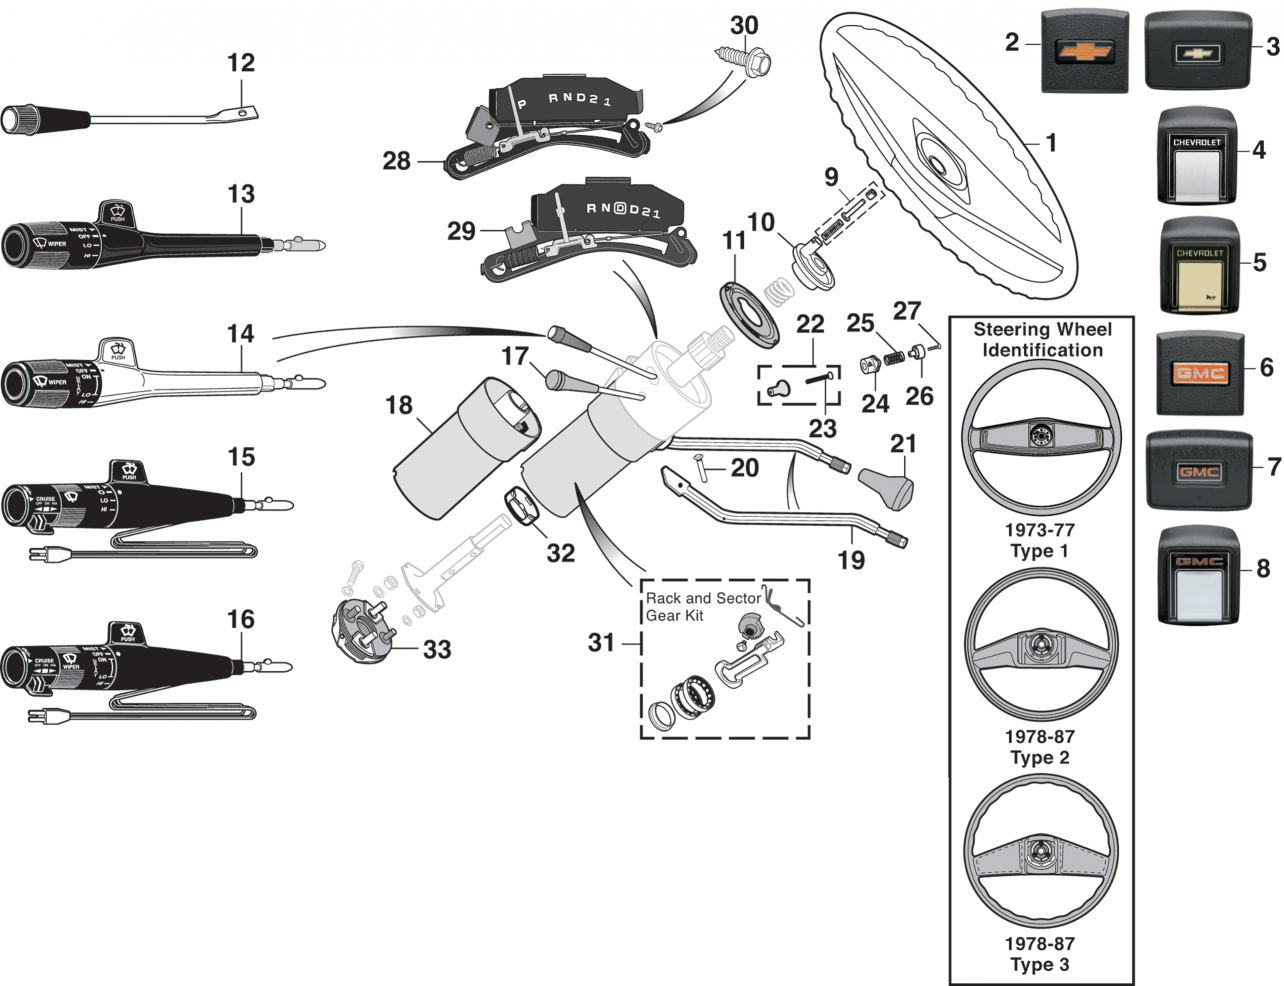 1973-89 Steering Components